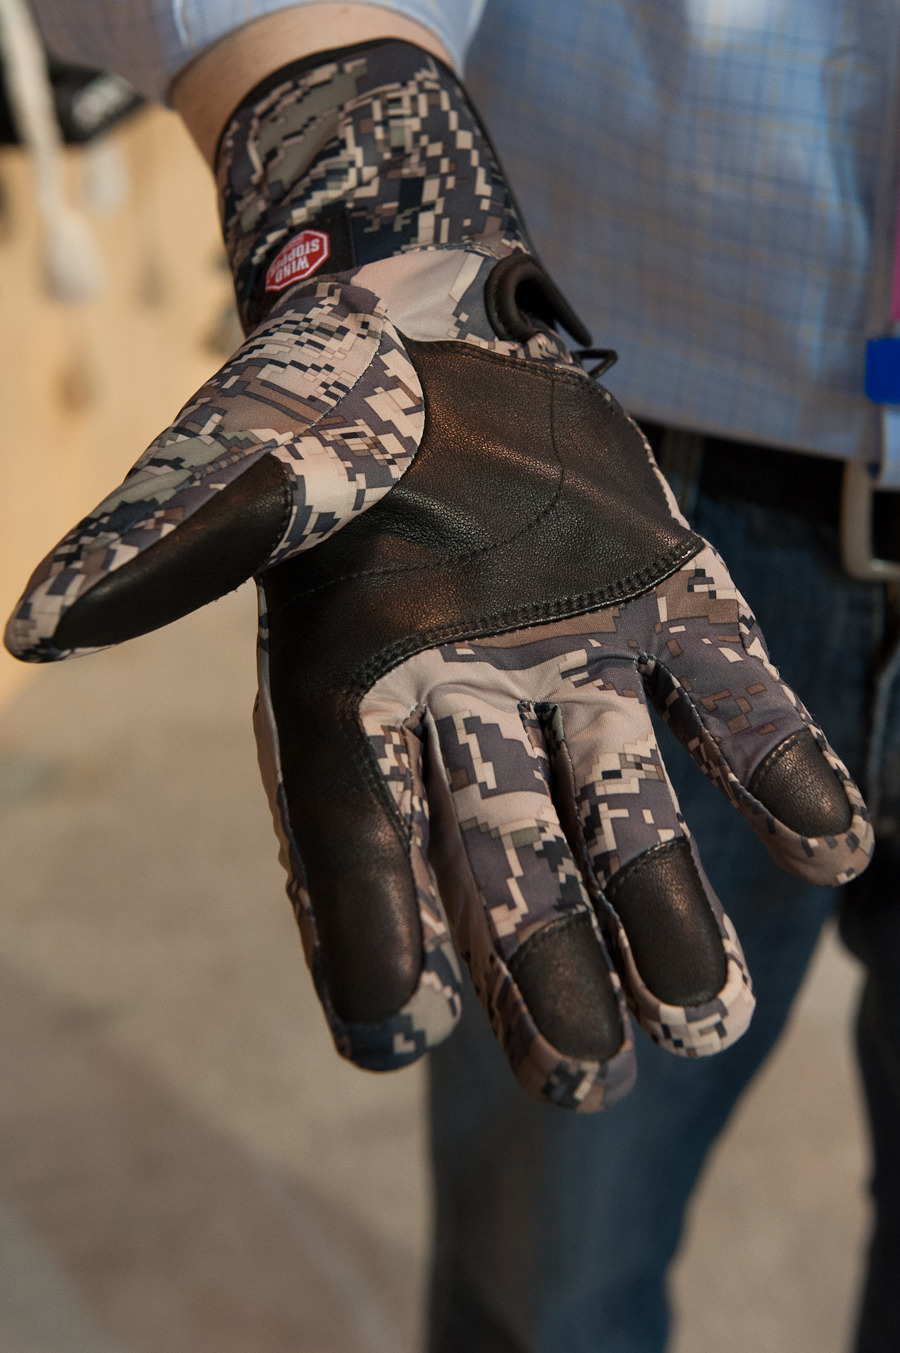 The Seirus next generation Windstopper glove is seamless on the inside, as opposed to other Windstopper gloves on the market for 2013/2014.